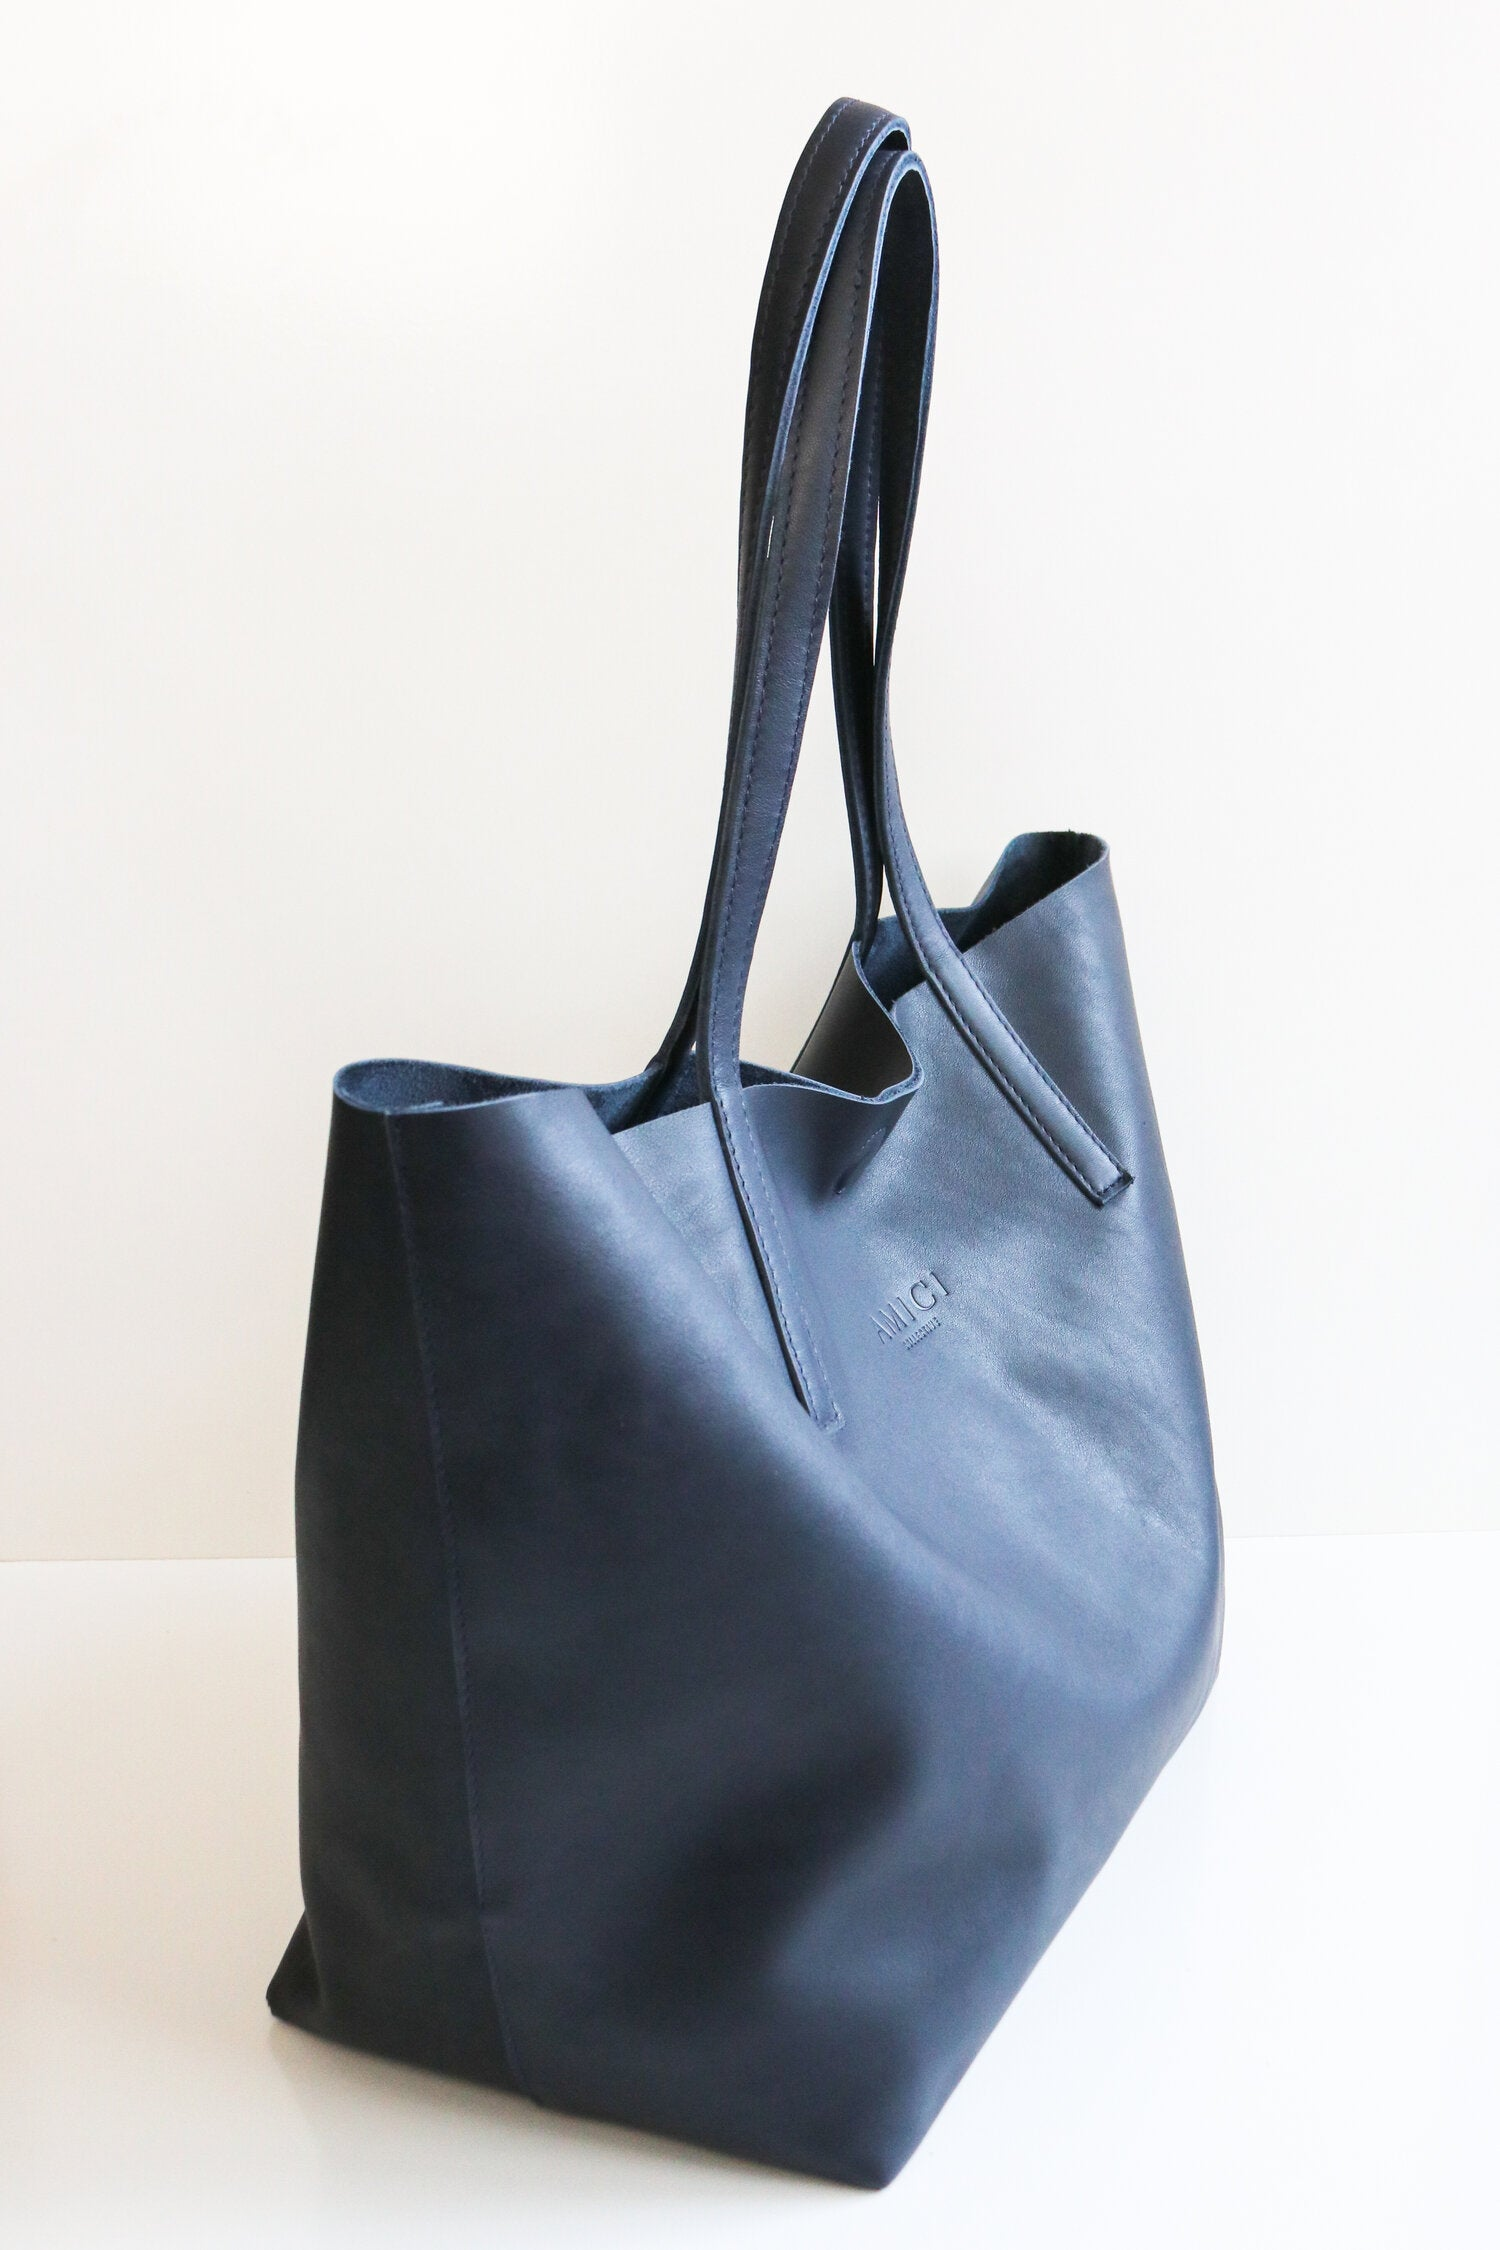 Navy Traveller Tote Bag Bags + wallets The Fashion Advocate ethical Australian fashion designer boutique Melbourne sustainable clothes